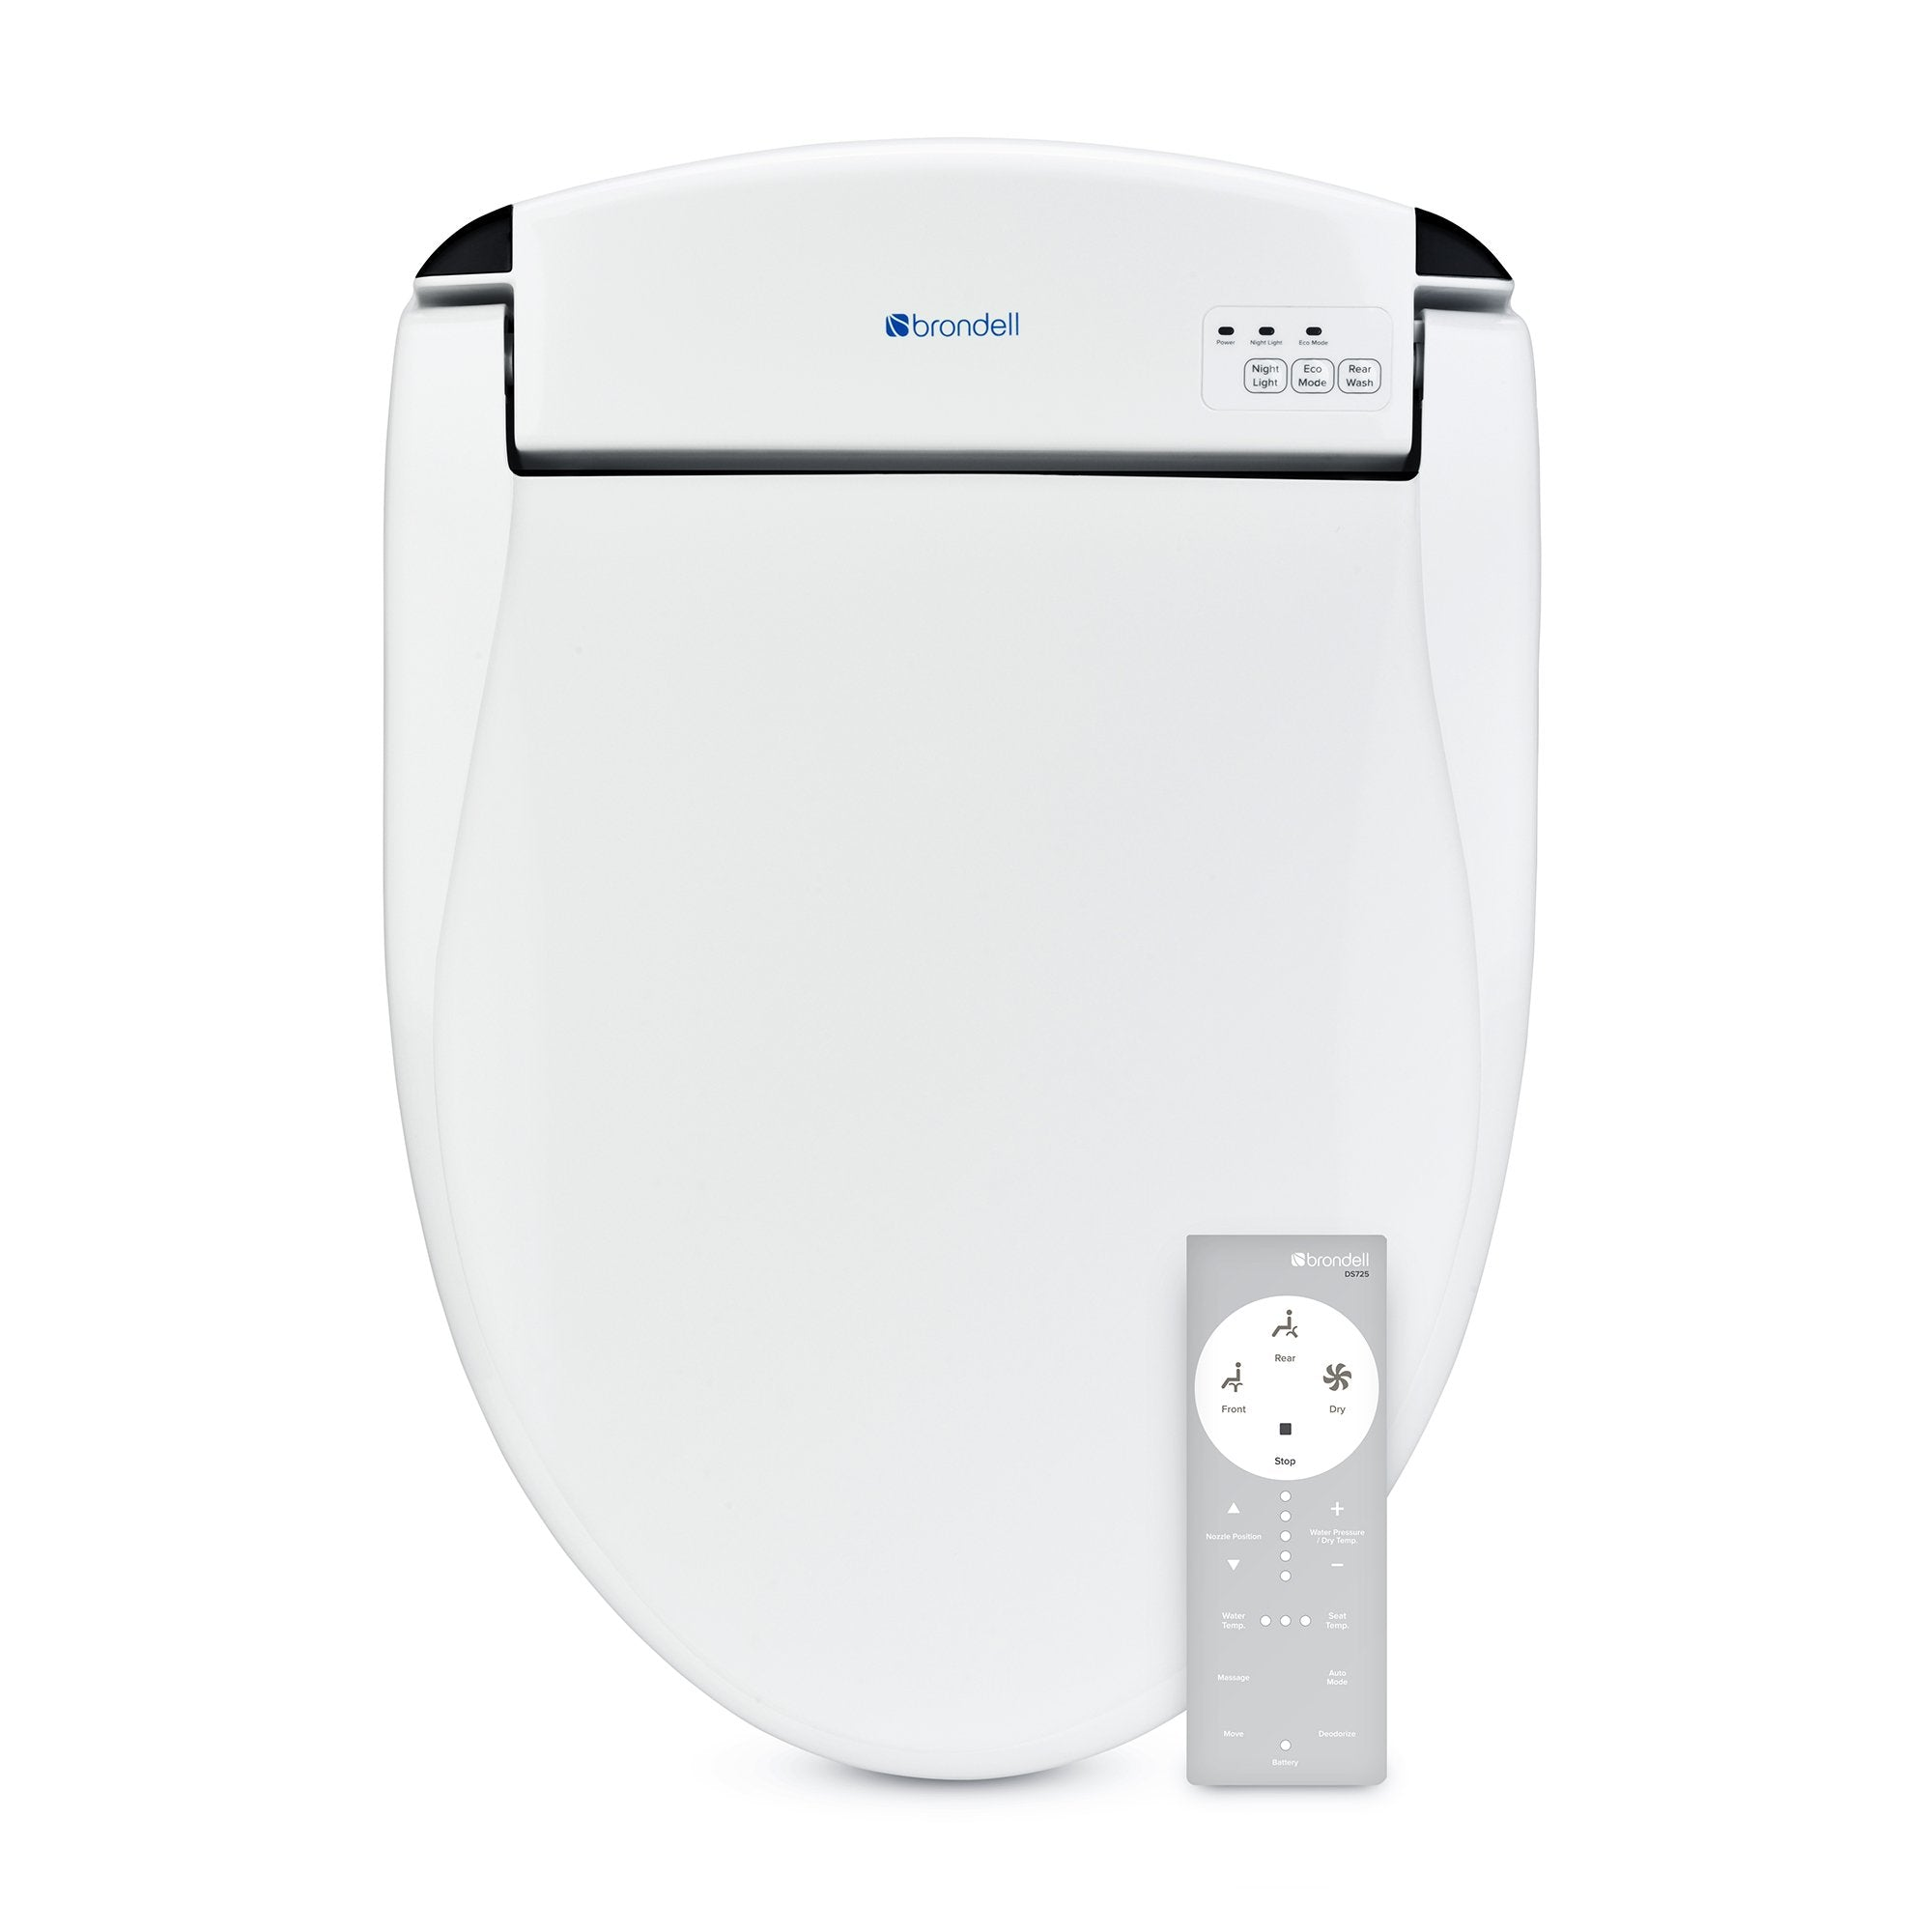 Genuine Brondell Swash Ds725 Rw Advanced Bidet Toilet Seat For Round Toilets In White Bath4all